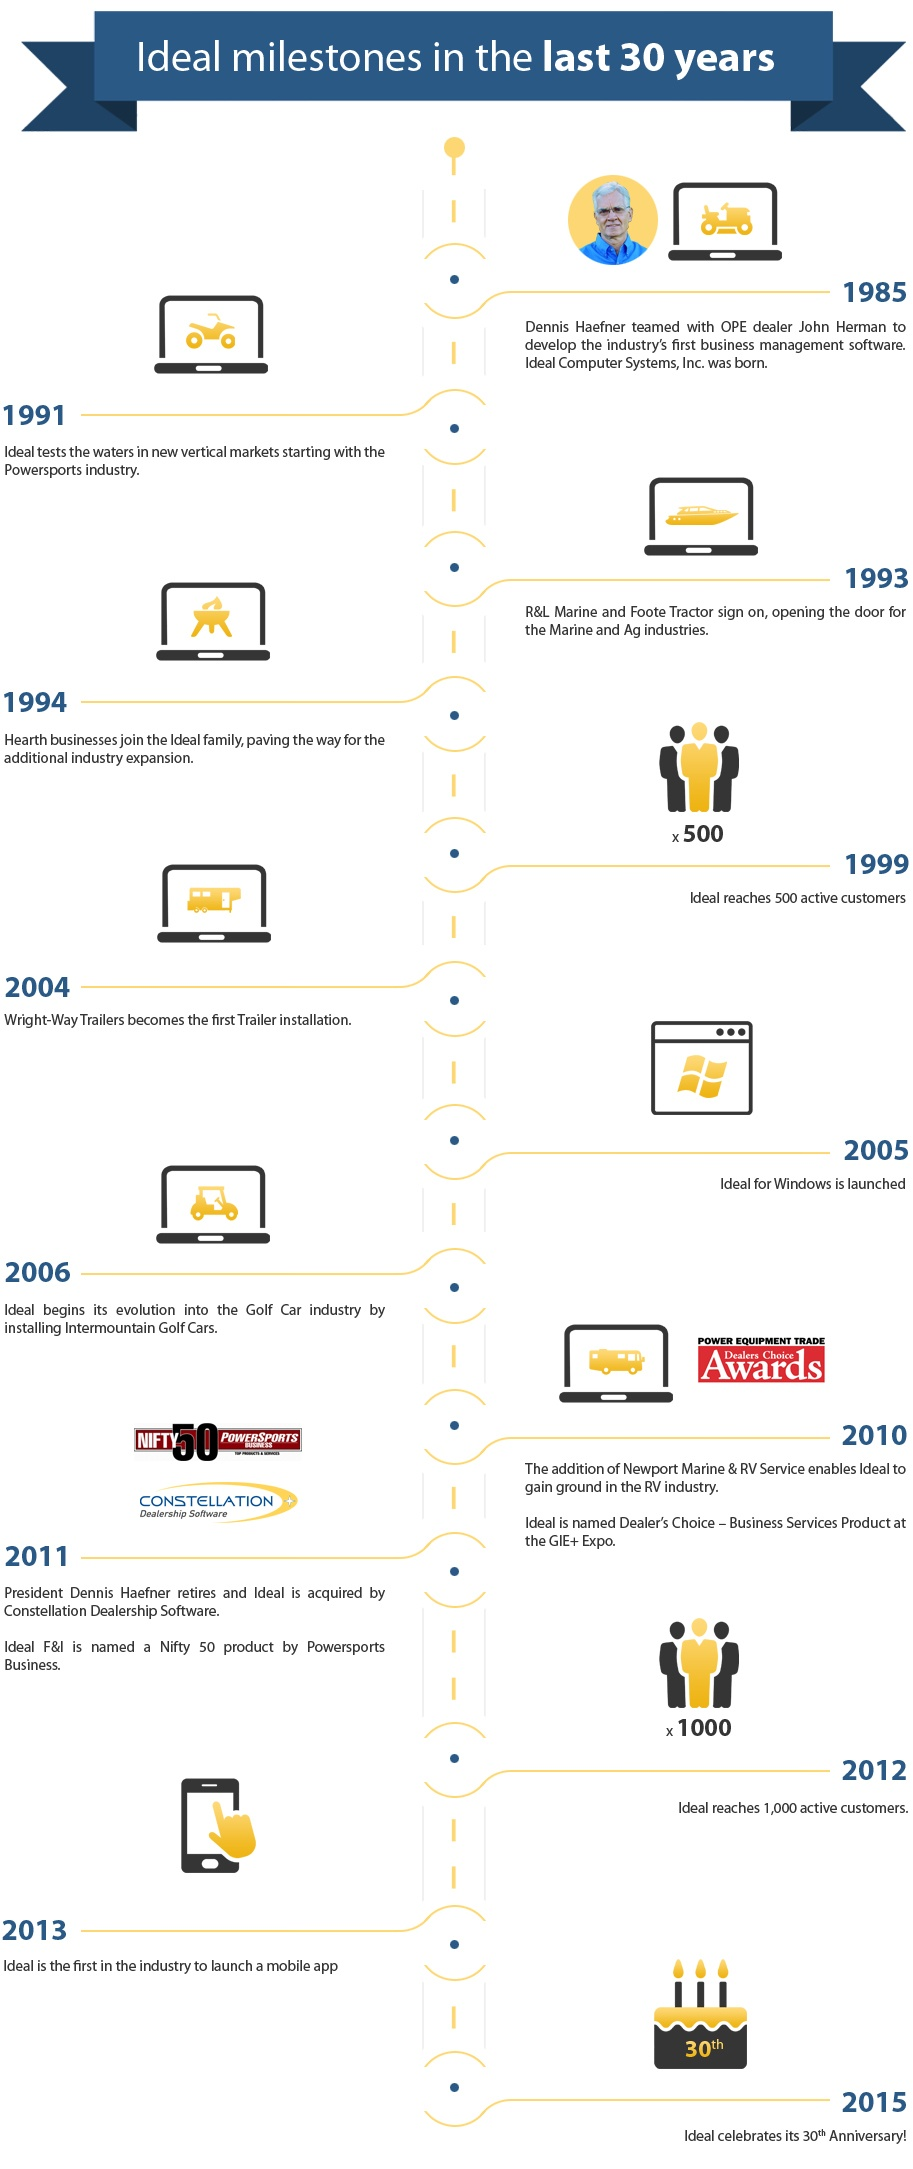 Ideal milestones in the last 30 years